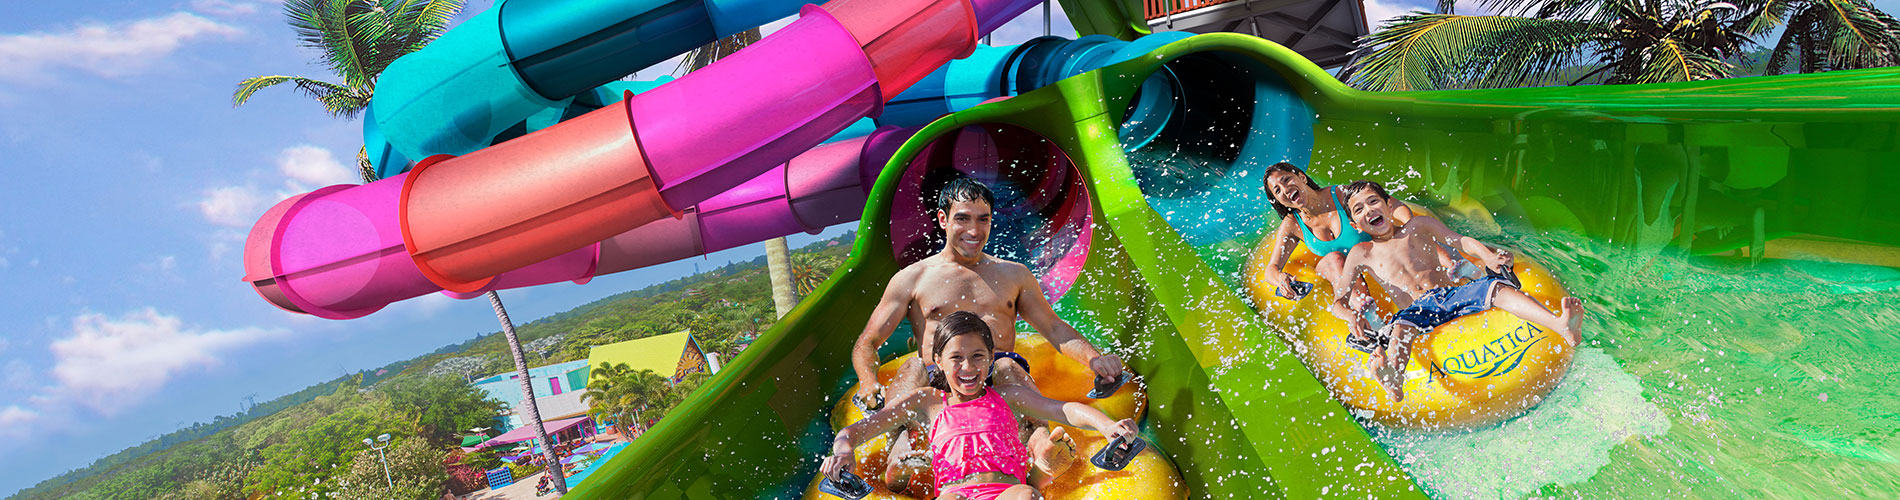 Riptide Race Coming Soon to Aquatica Orlando Water Park